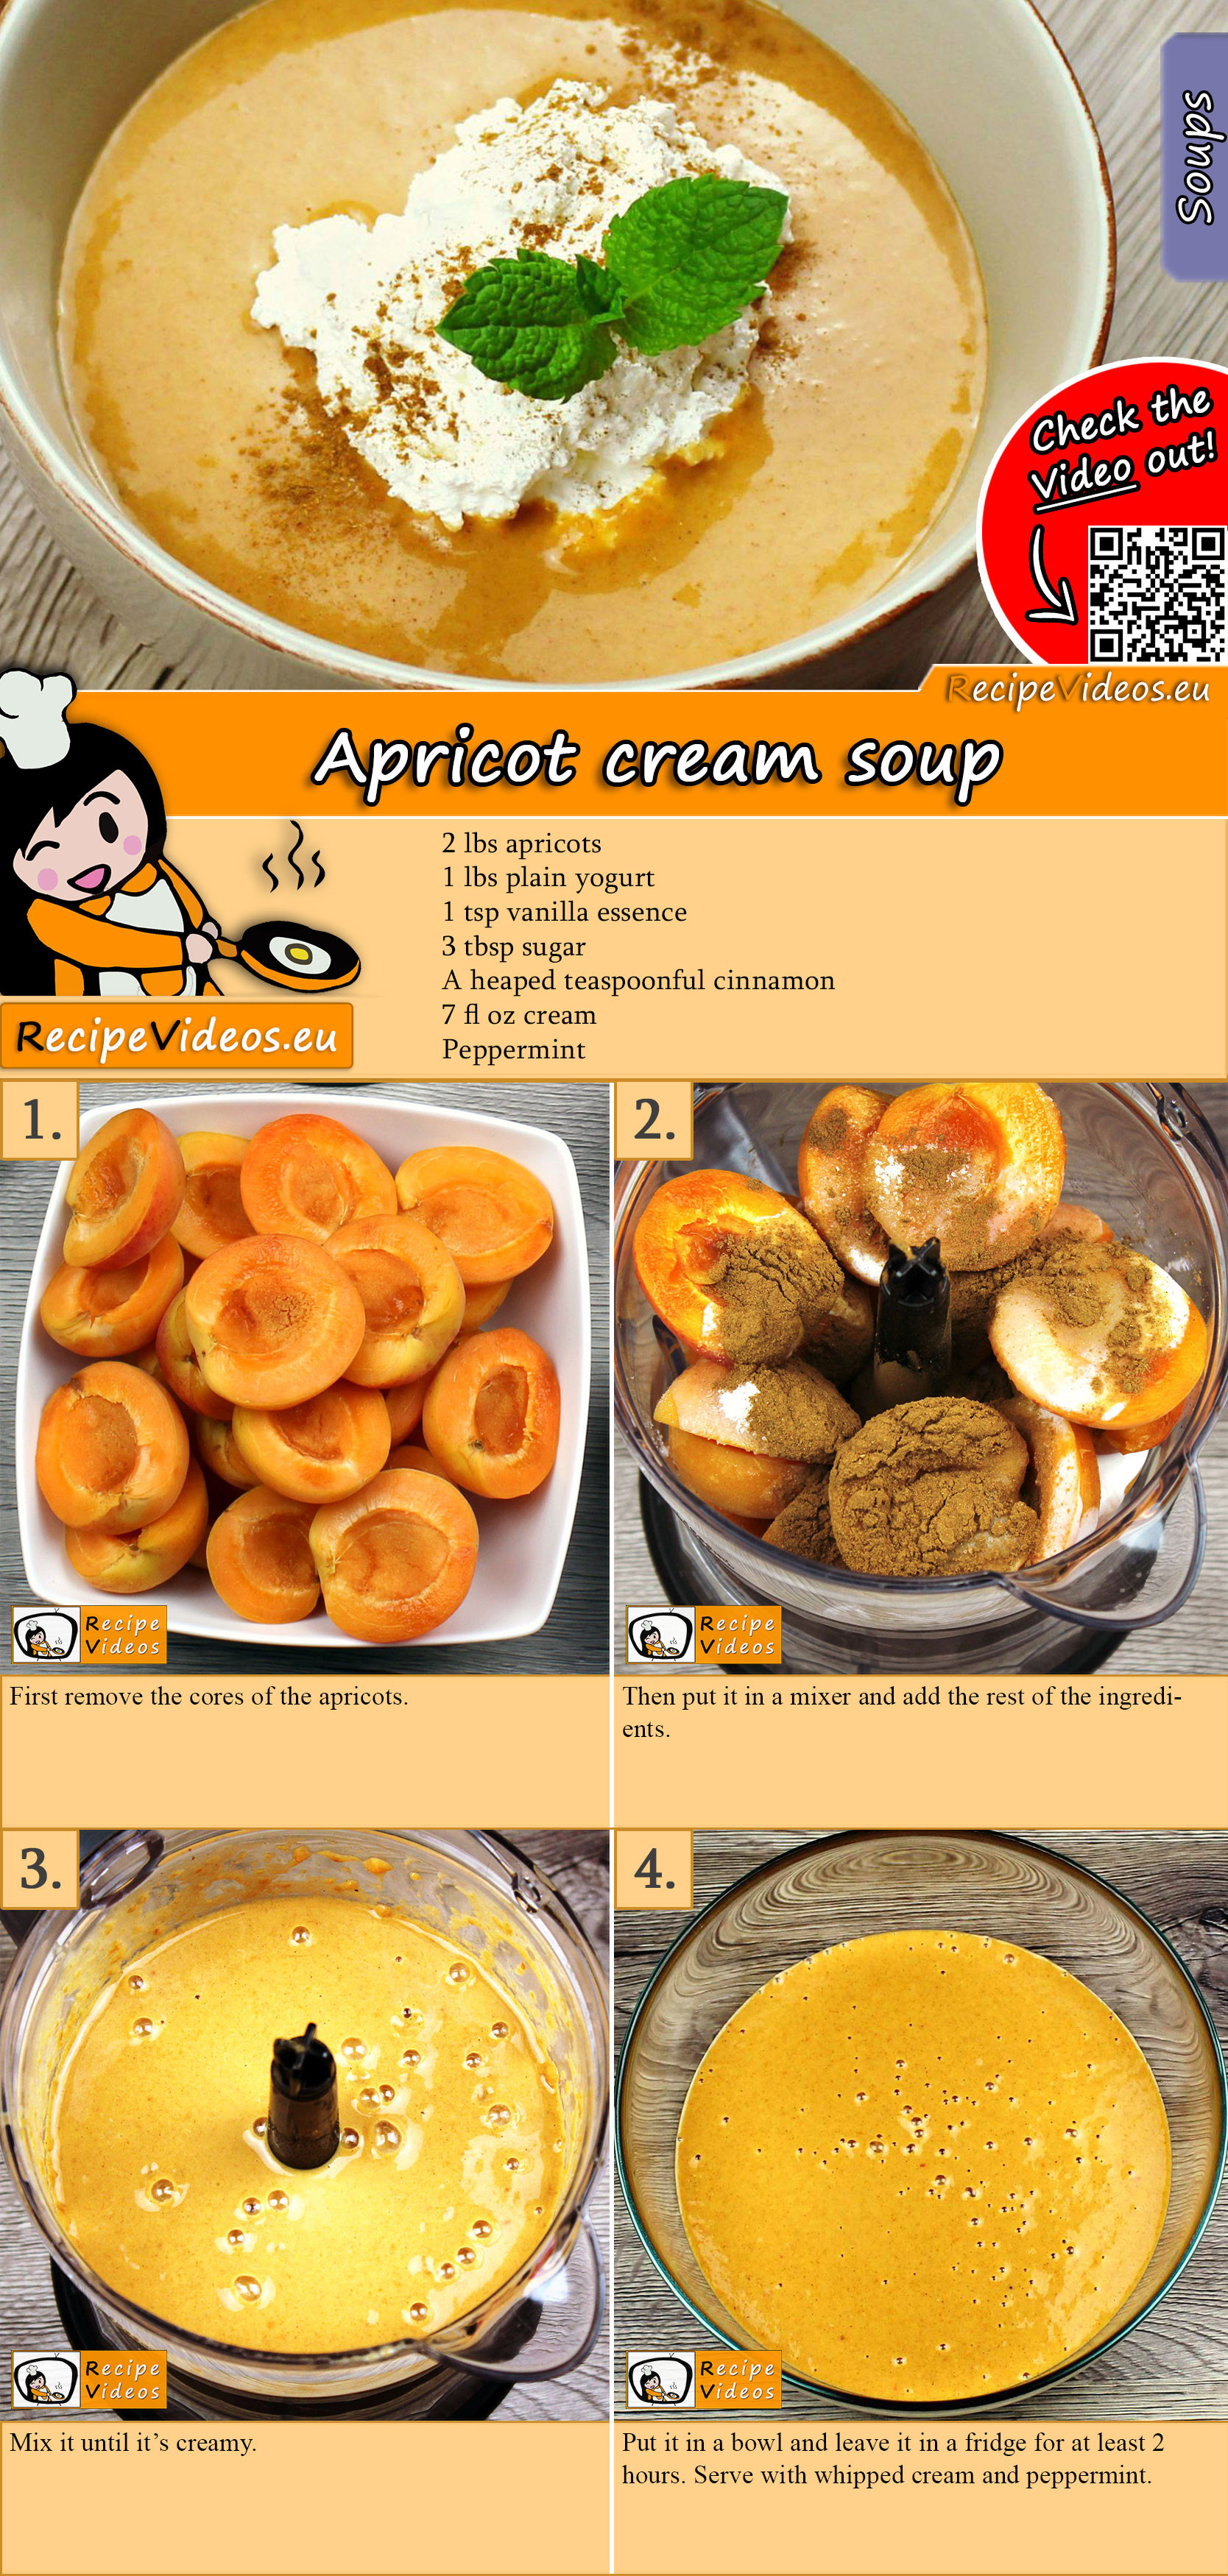 Apricot cream soup recipe with video